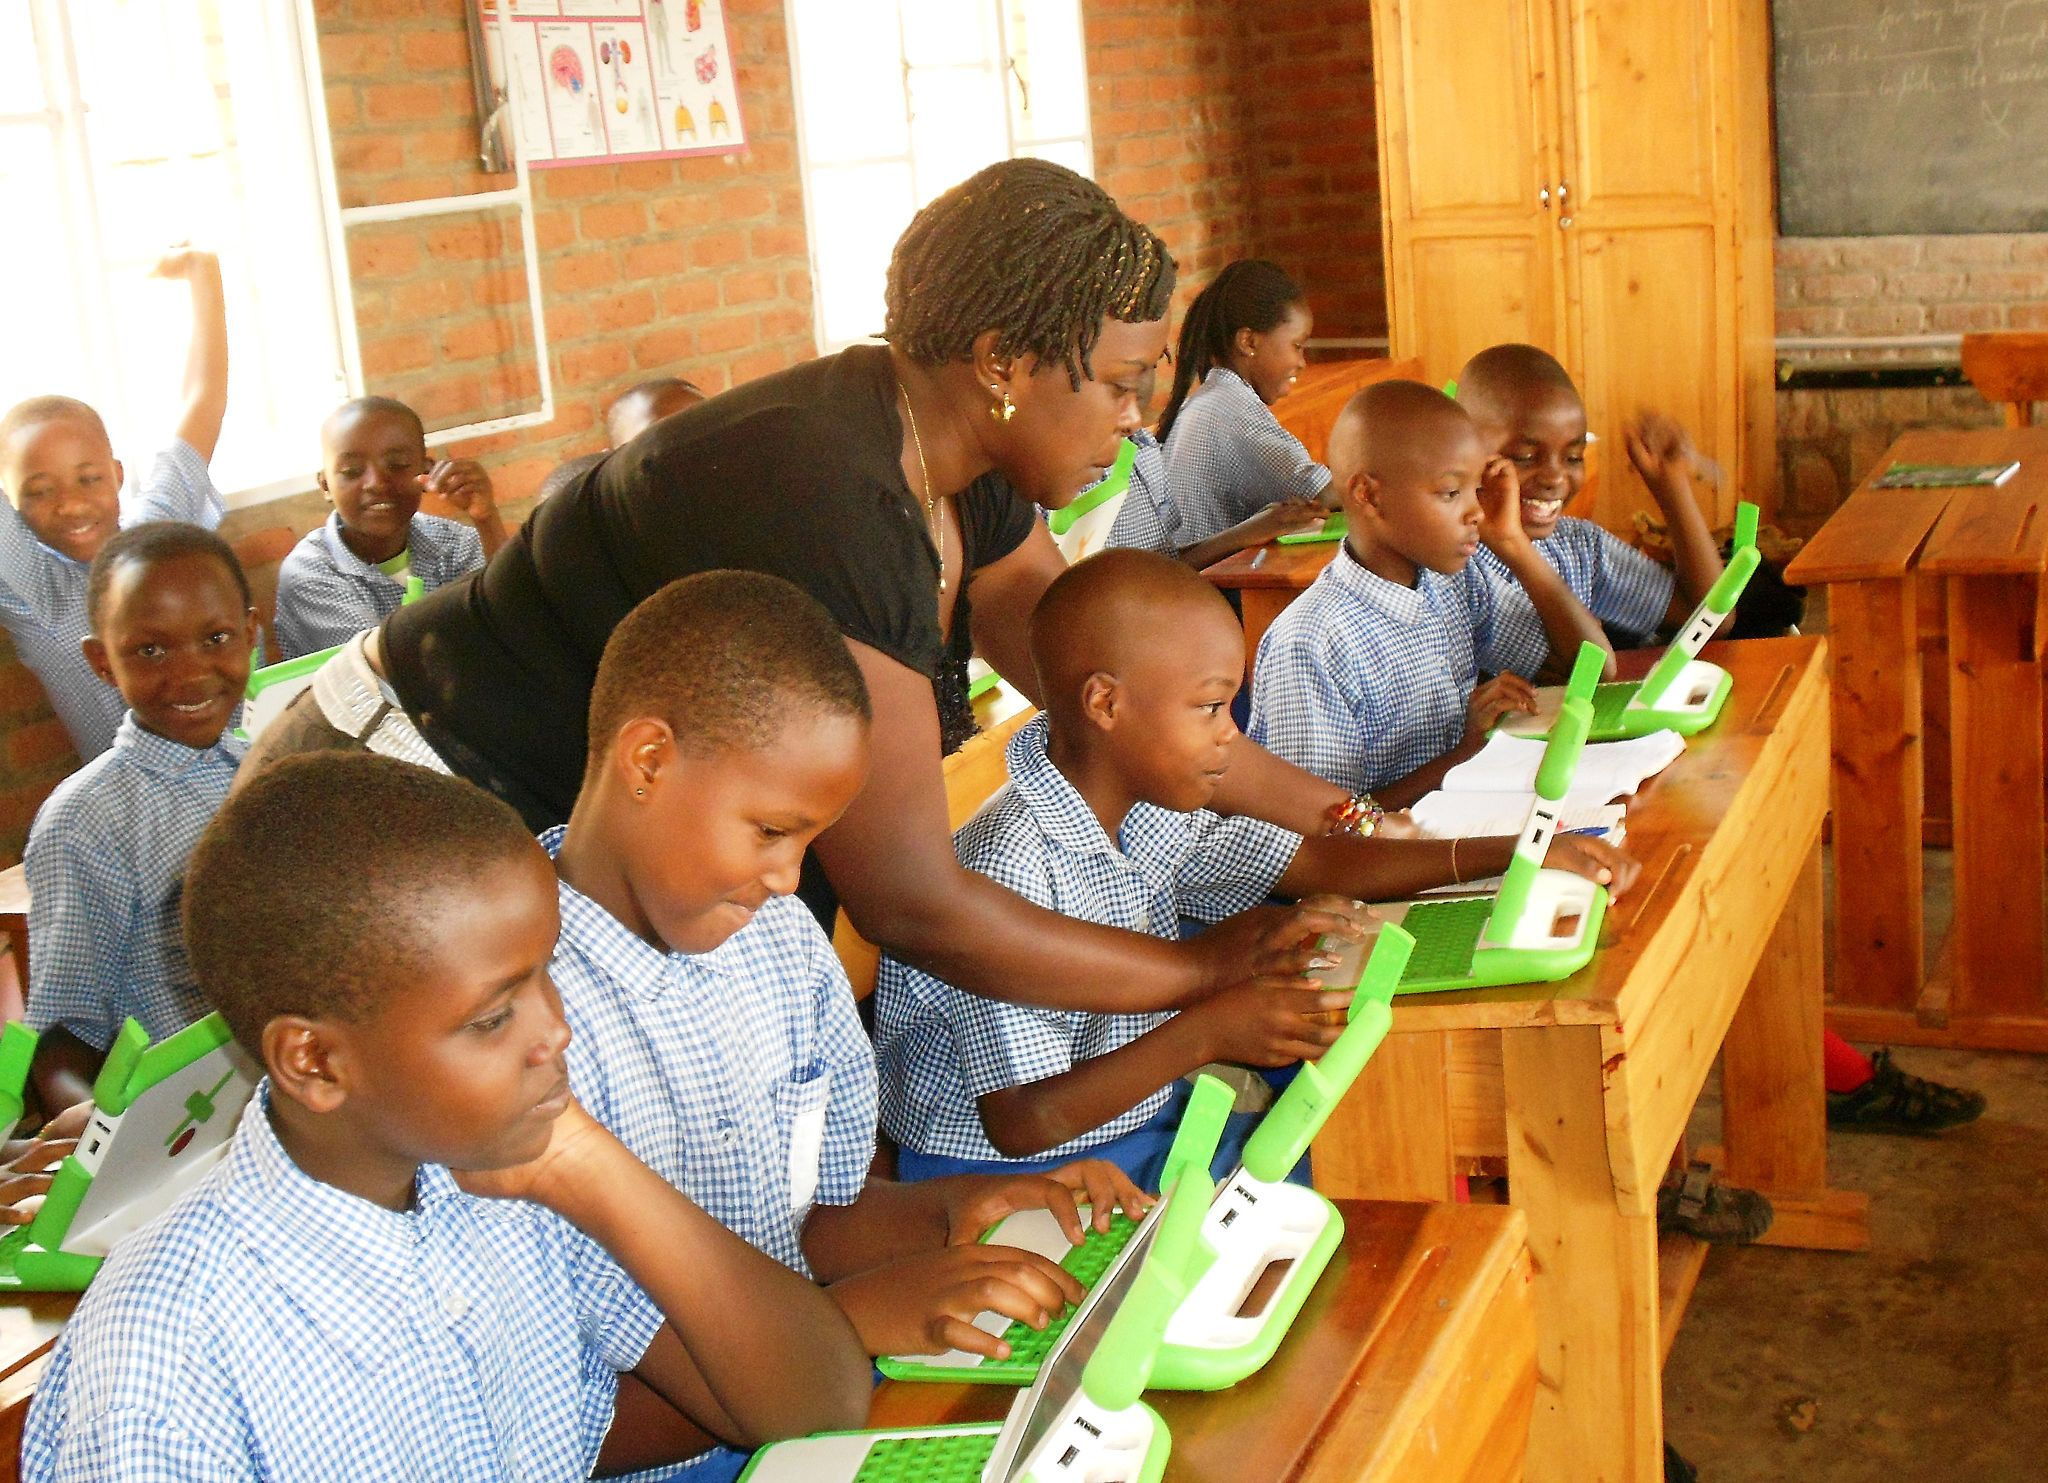 Education in Emergencies and EdTech: What the evidence shows us